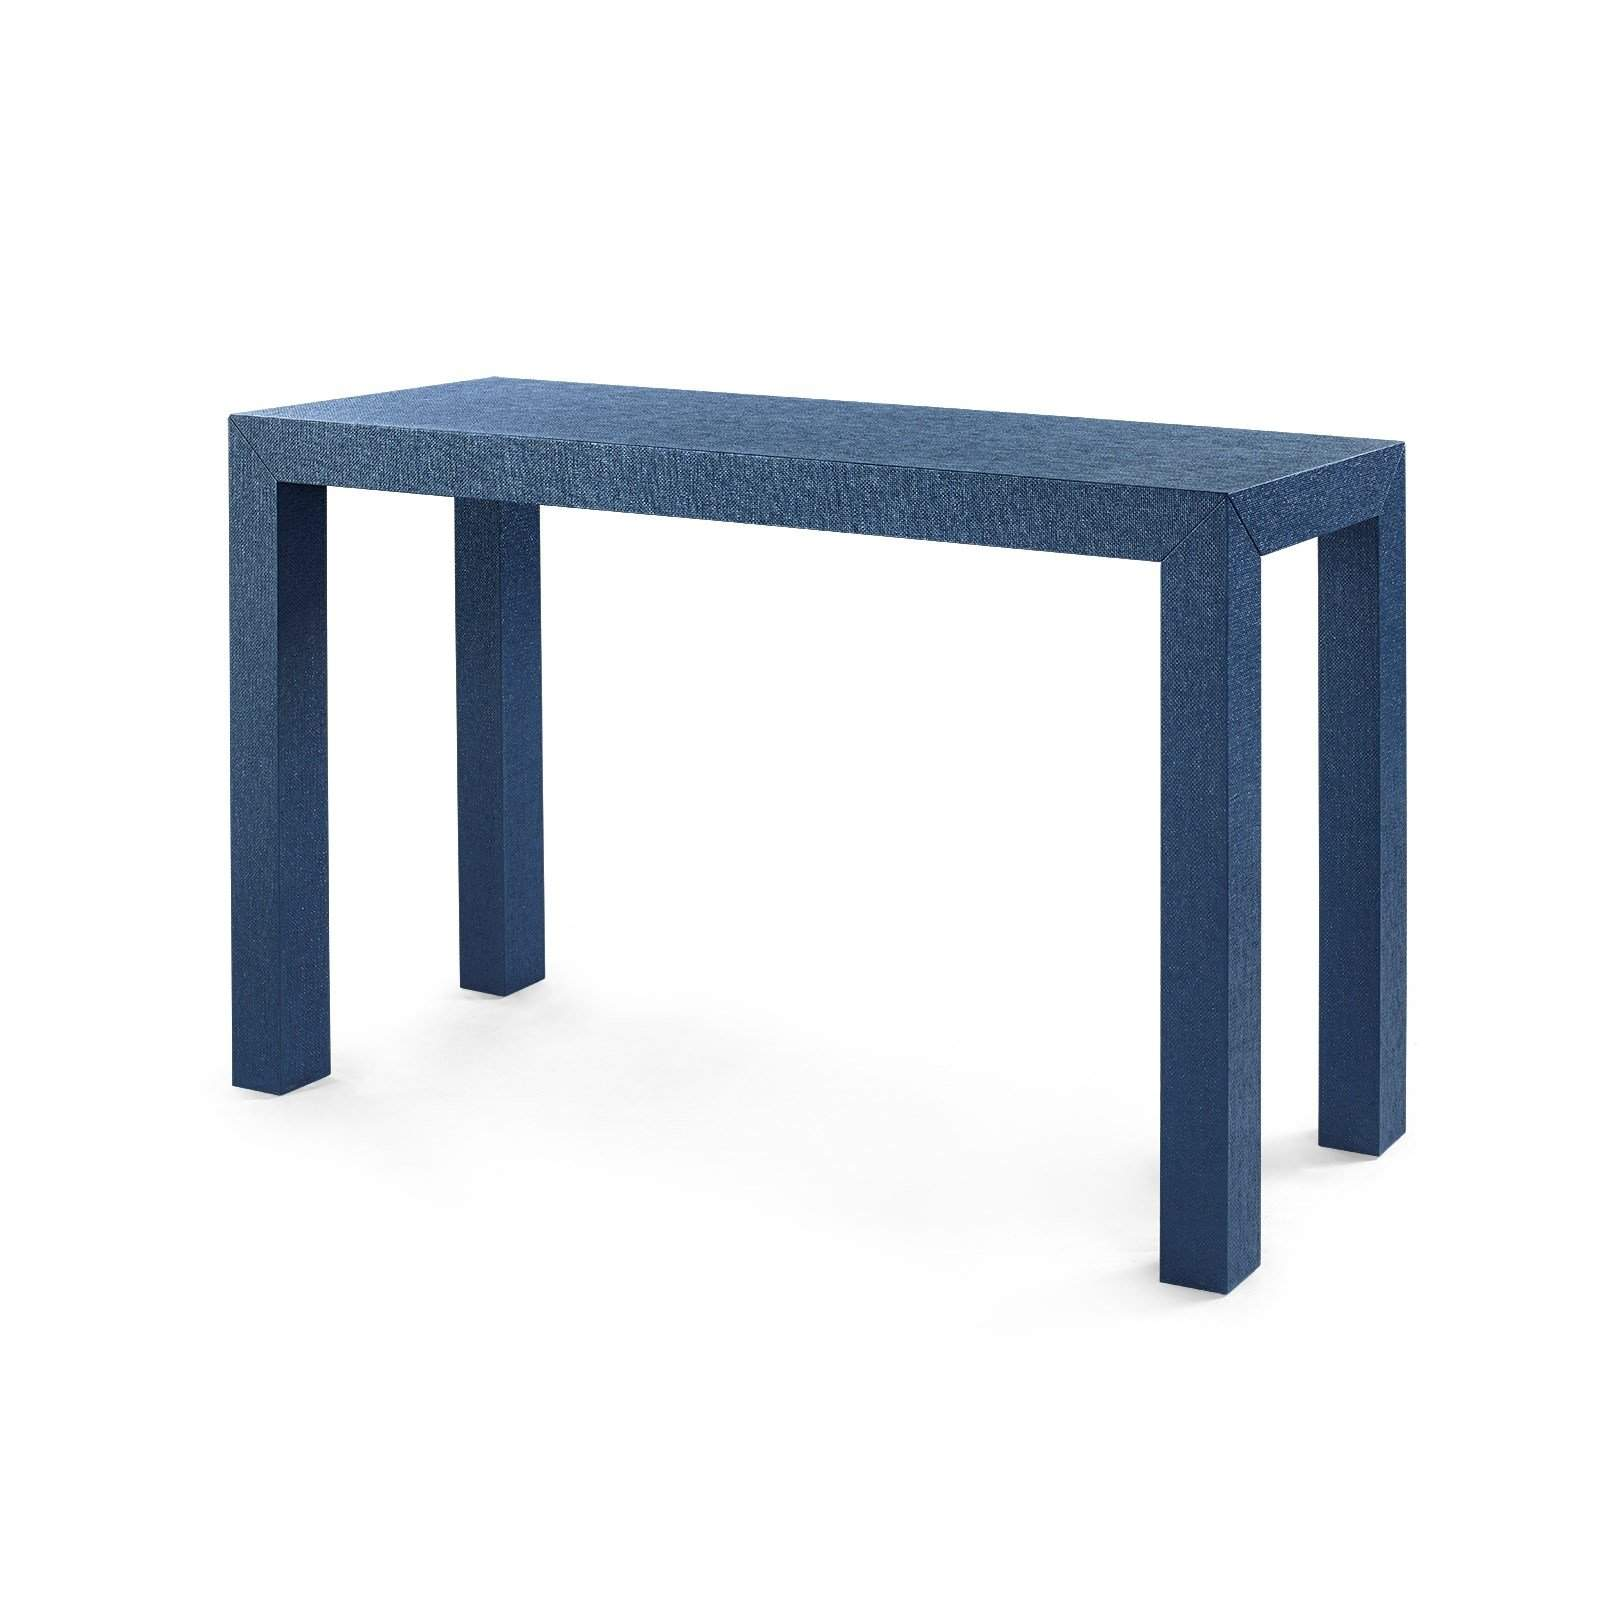 bungalow 5 parsons console table in navy blue. Black Bedroom Furniture Sets. Home Design Ideas